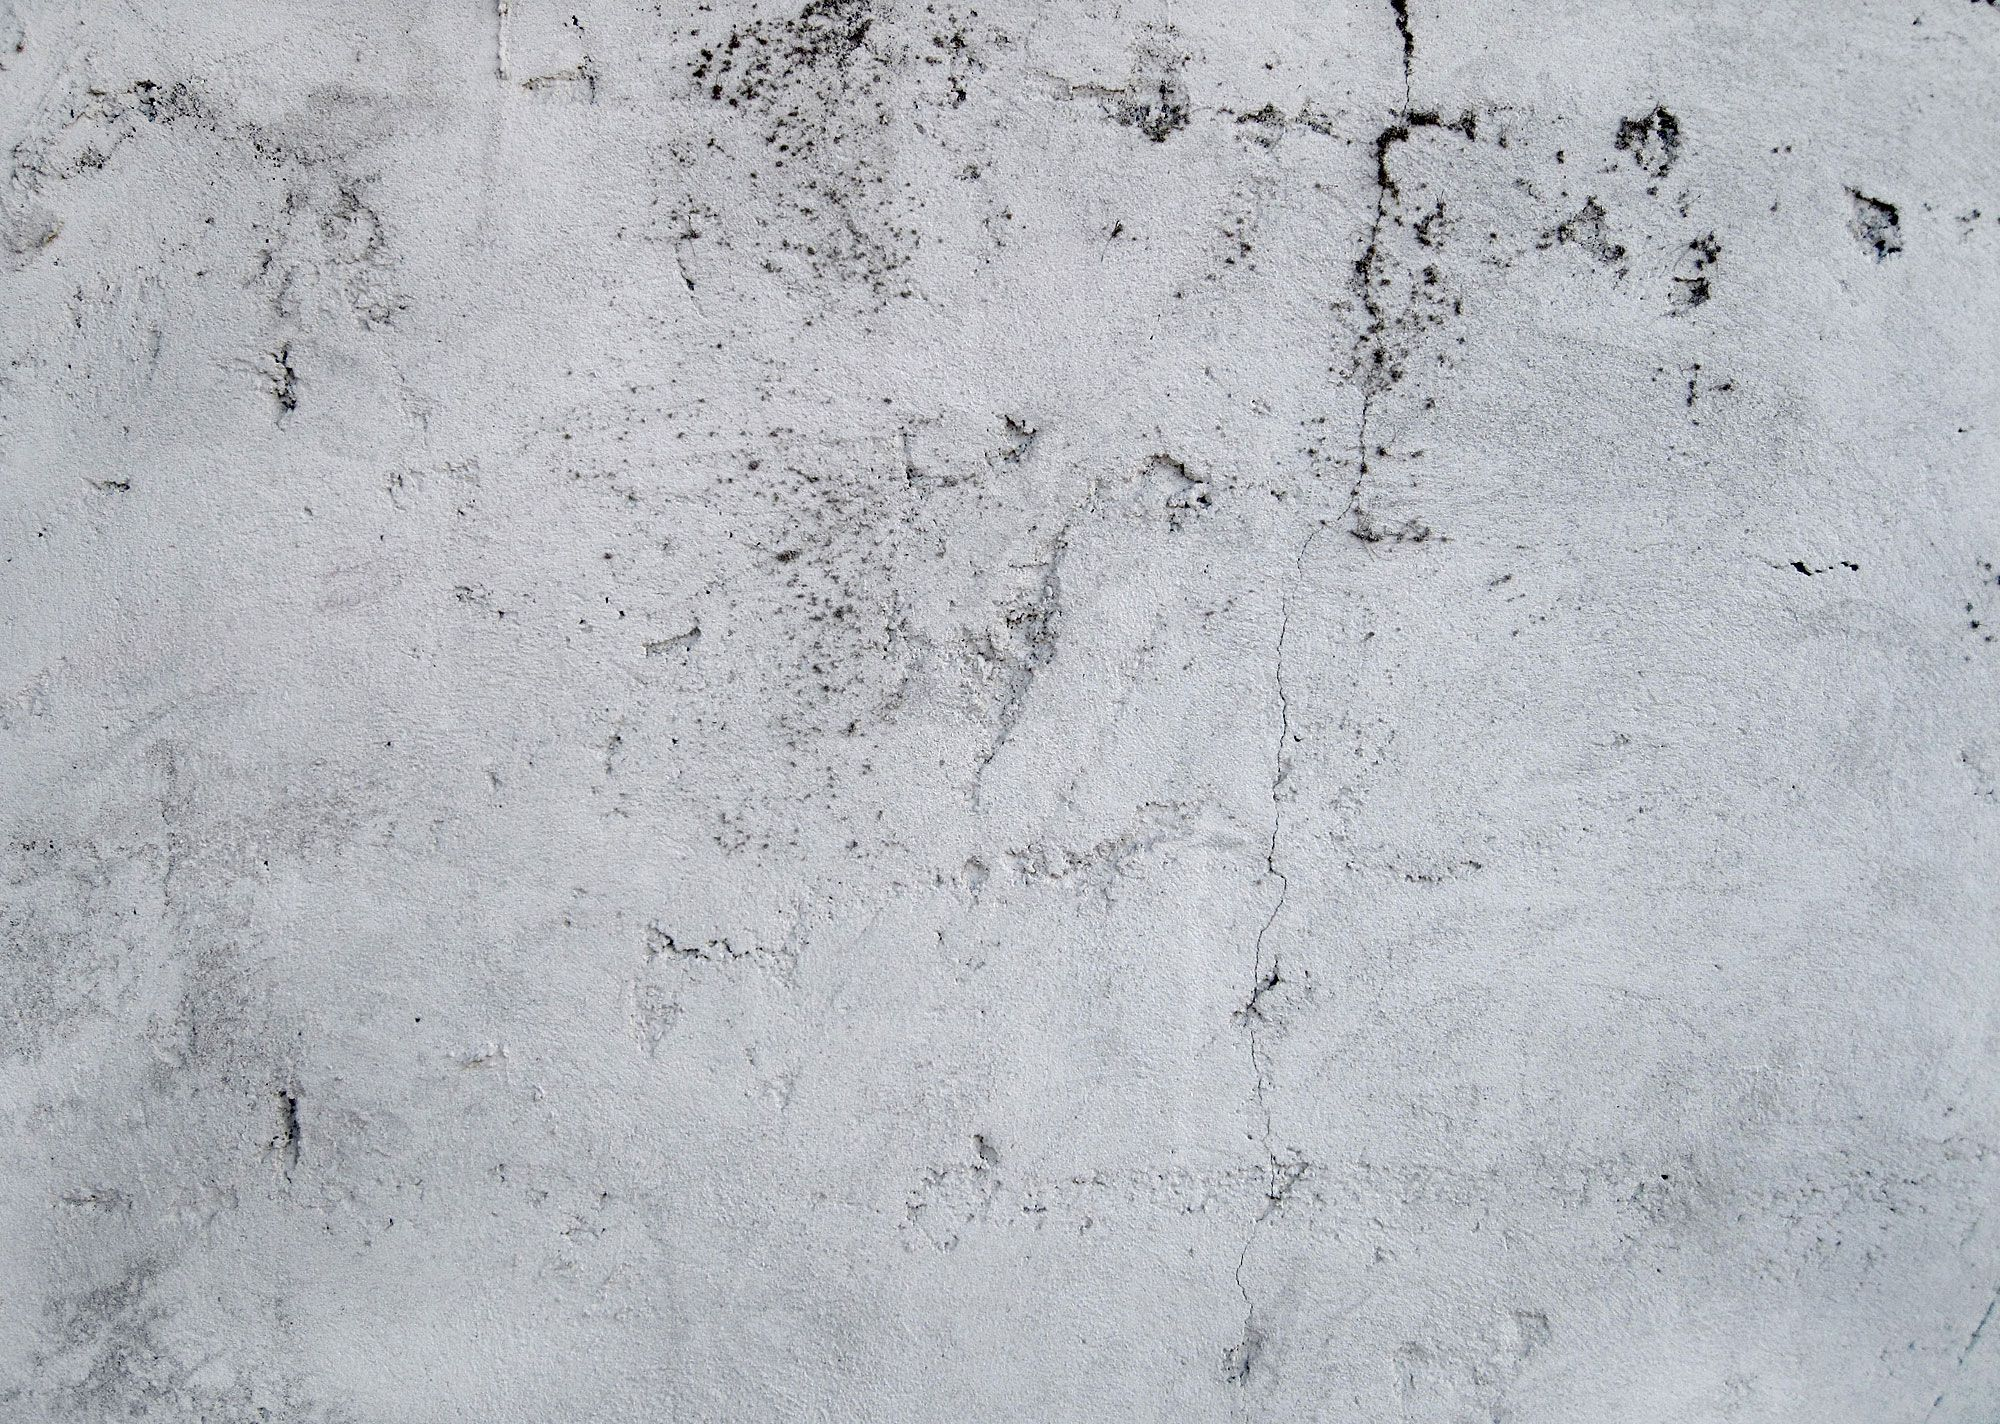 2000x1424 White Wall Texture Cracks Grunge Desktop Wallpaper